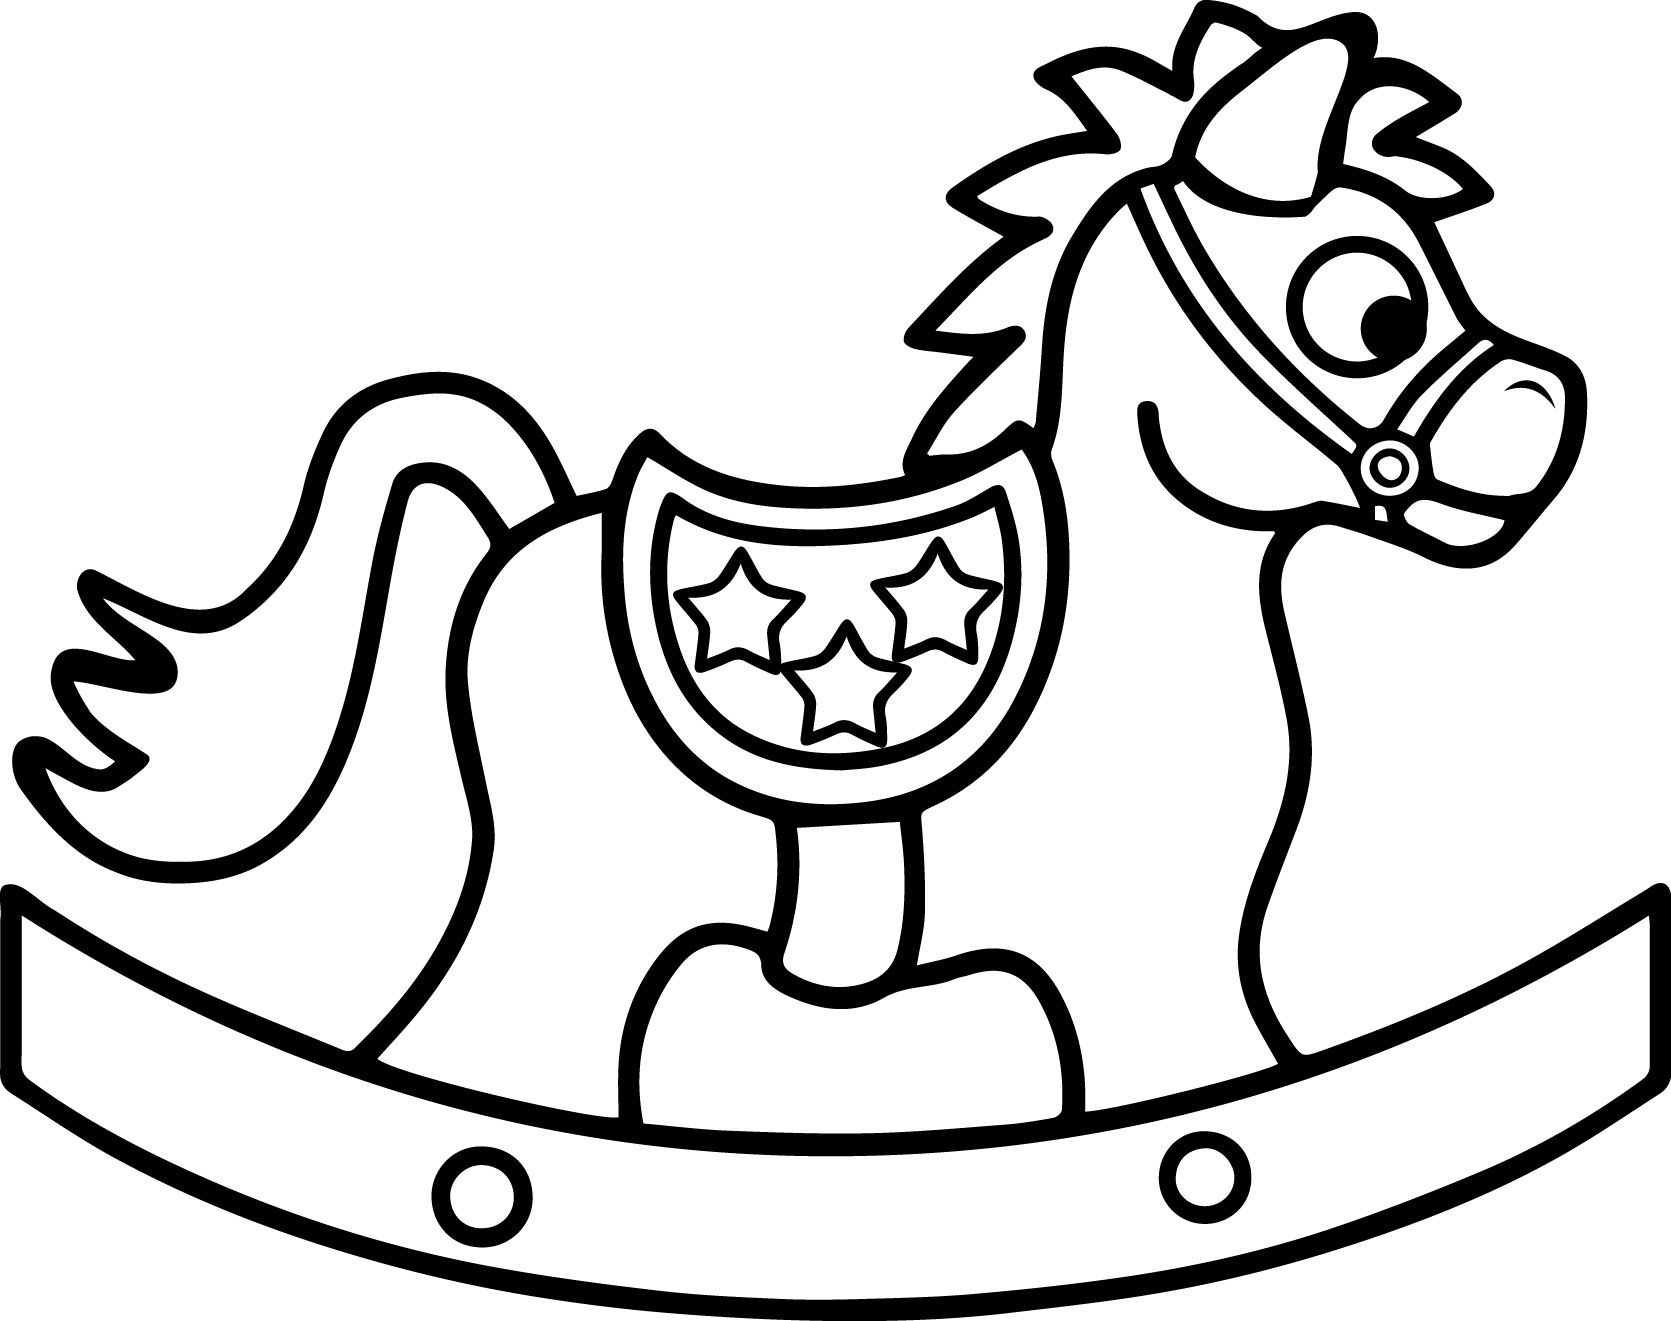 Horse Toy Coloring Page